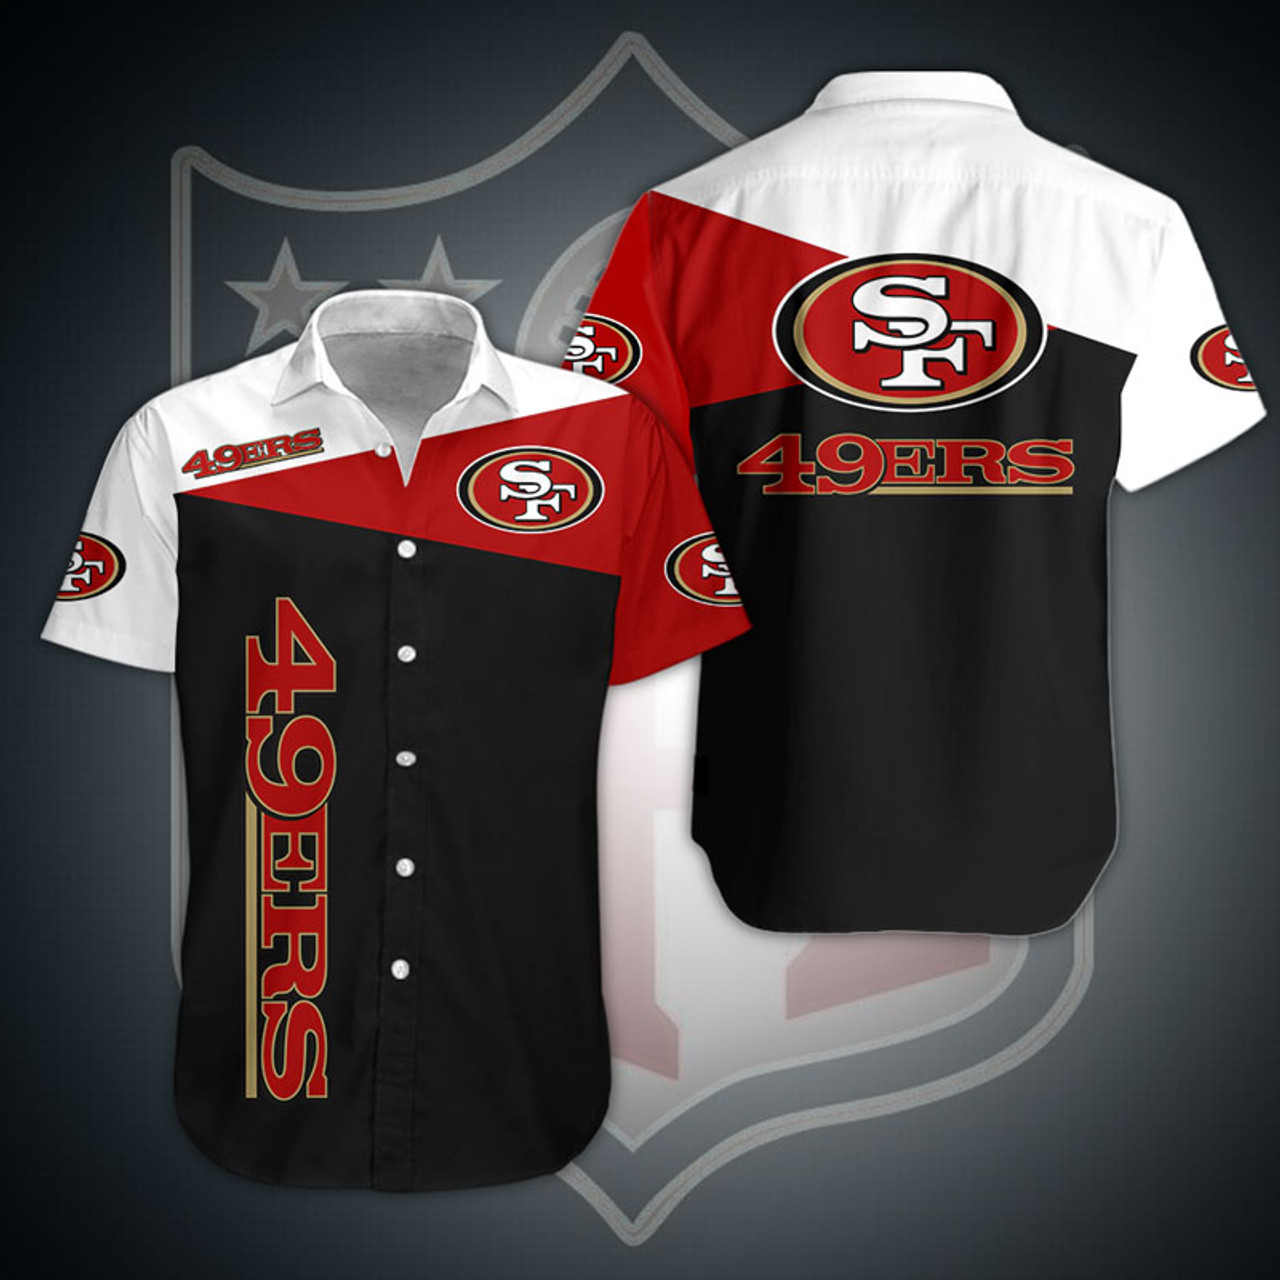 **(OFFICIAL-N.F.L.SAN-FRANCISCO-49ERS-FASHION-BUTTON-FRONT-SPORT-SHIRTS/CUSTOM-3D-GRAPHIC-PRINTED-DETAILED-DOUBLE-SIDED-ALL-OVER/CLASSIC-OFFICIAL-49ERS-LOGOS & OFFICIAL-49ERS-TEAM-COLORS/PREMIUM-OFFICIAL-N.F.L.49ERS-TEAM-BUTTON-FRONT-SPORT-SHIRTS)**